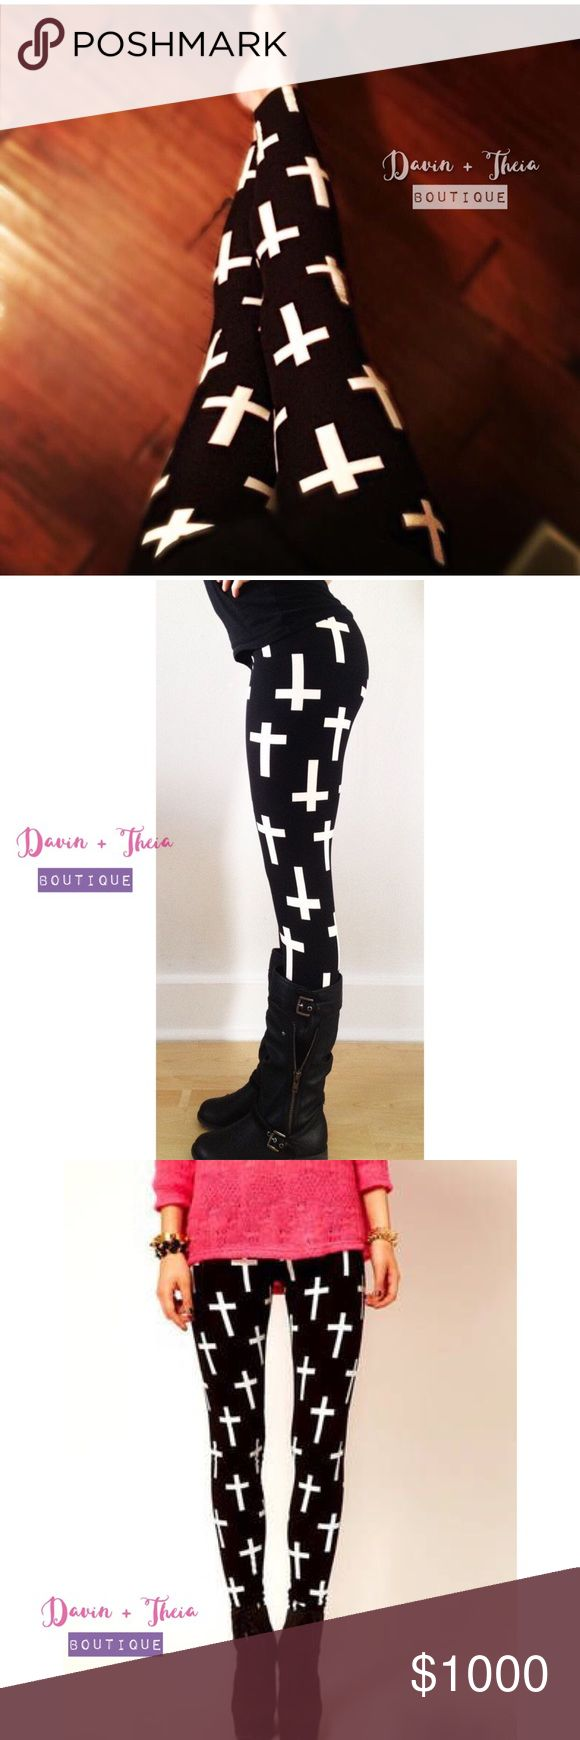 """White Cross on Black Leggings BRAND NEW  High quality print white cross on black leggings. Soft and comfortable. One size fits most.  92% Polyester 8% Spandex  Submit your offer thru the """"Offer"""" button NO Price discussion in the comment NO Lowballing NO Trades Pants Leggings"""